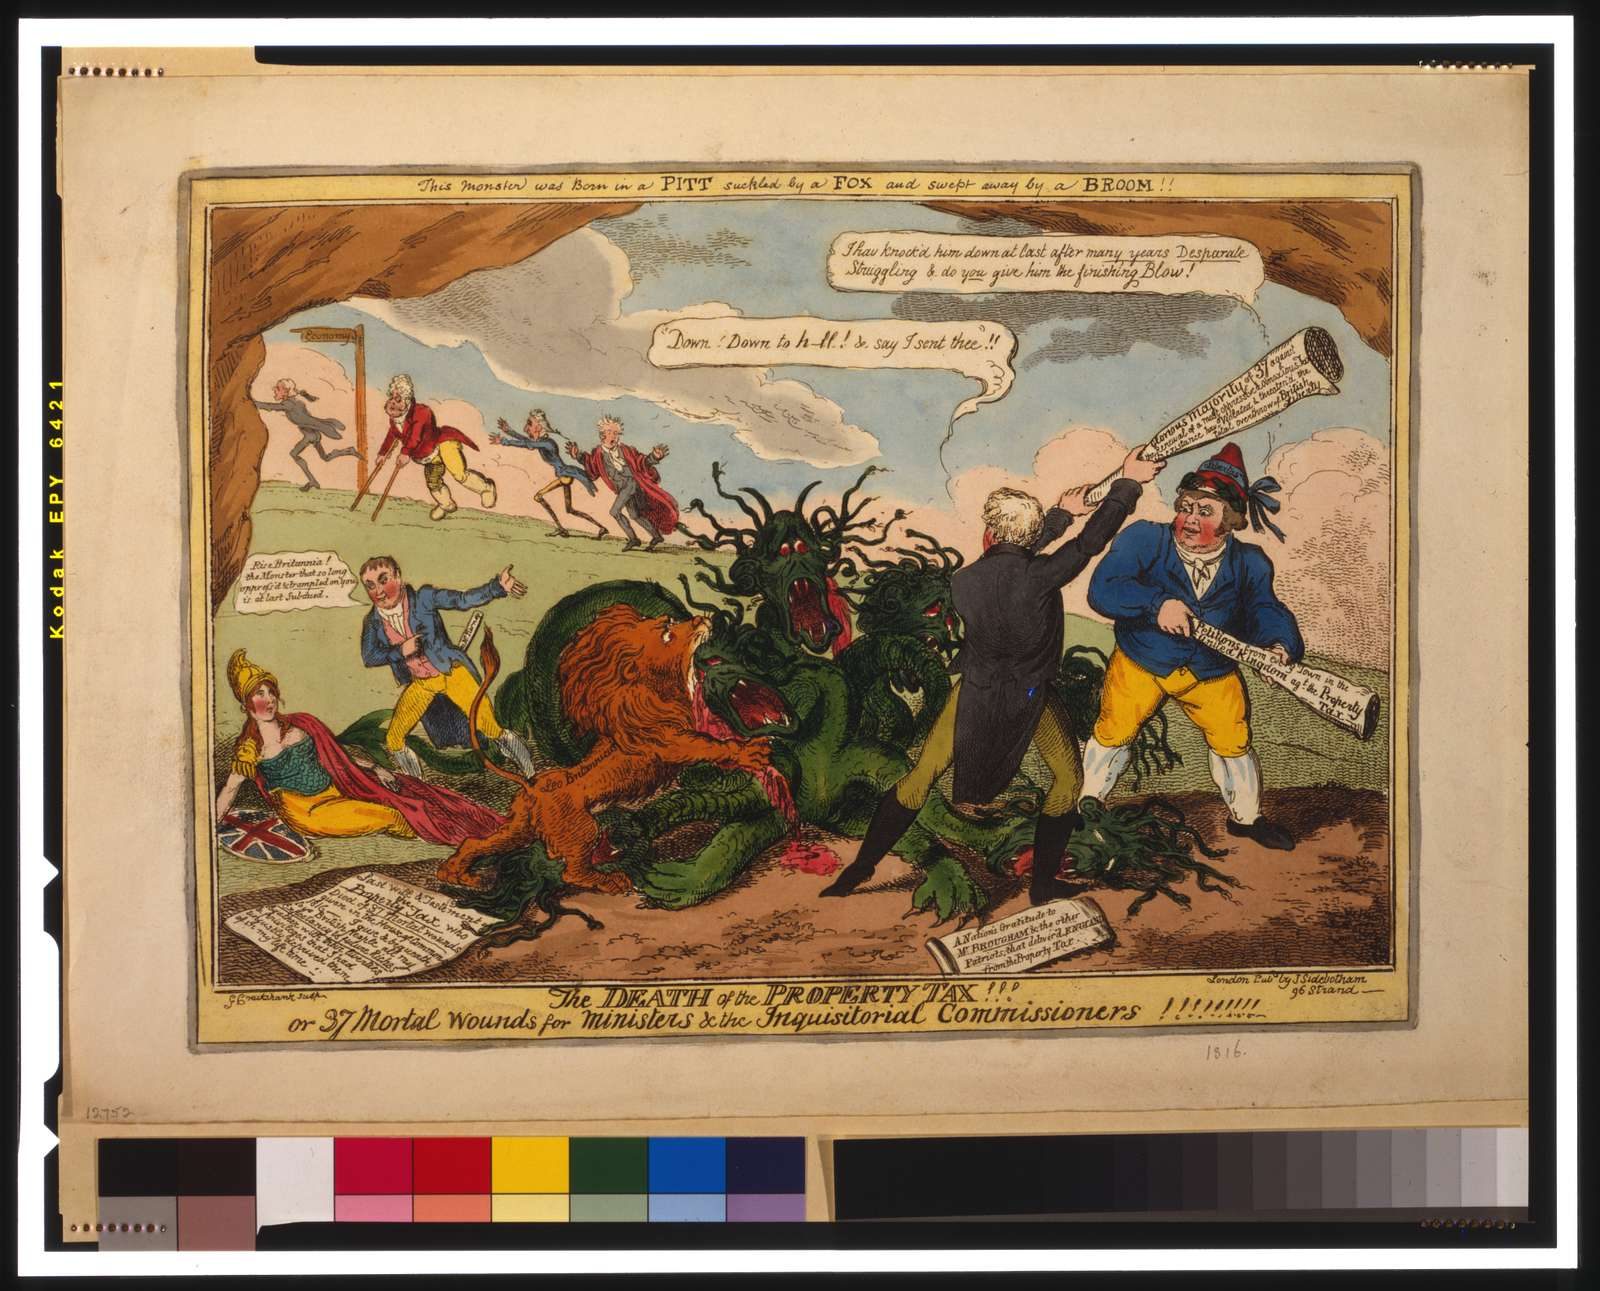 The death of the property tax! Or 37 mortal wounds for ministers & the inquisitoral commissioners! / G. Cruikshank sculp.